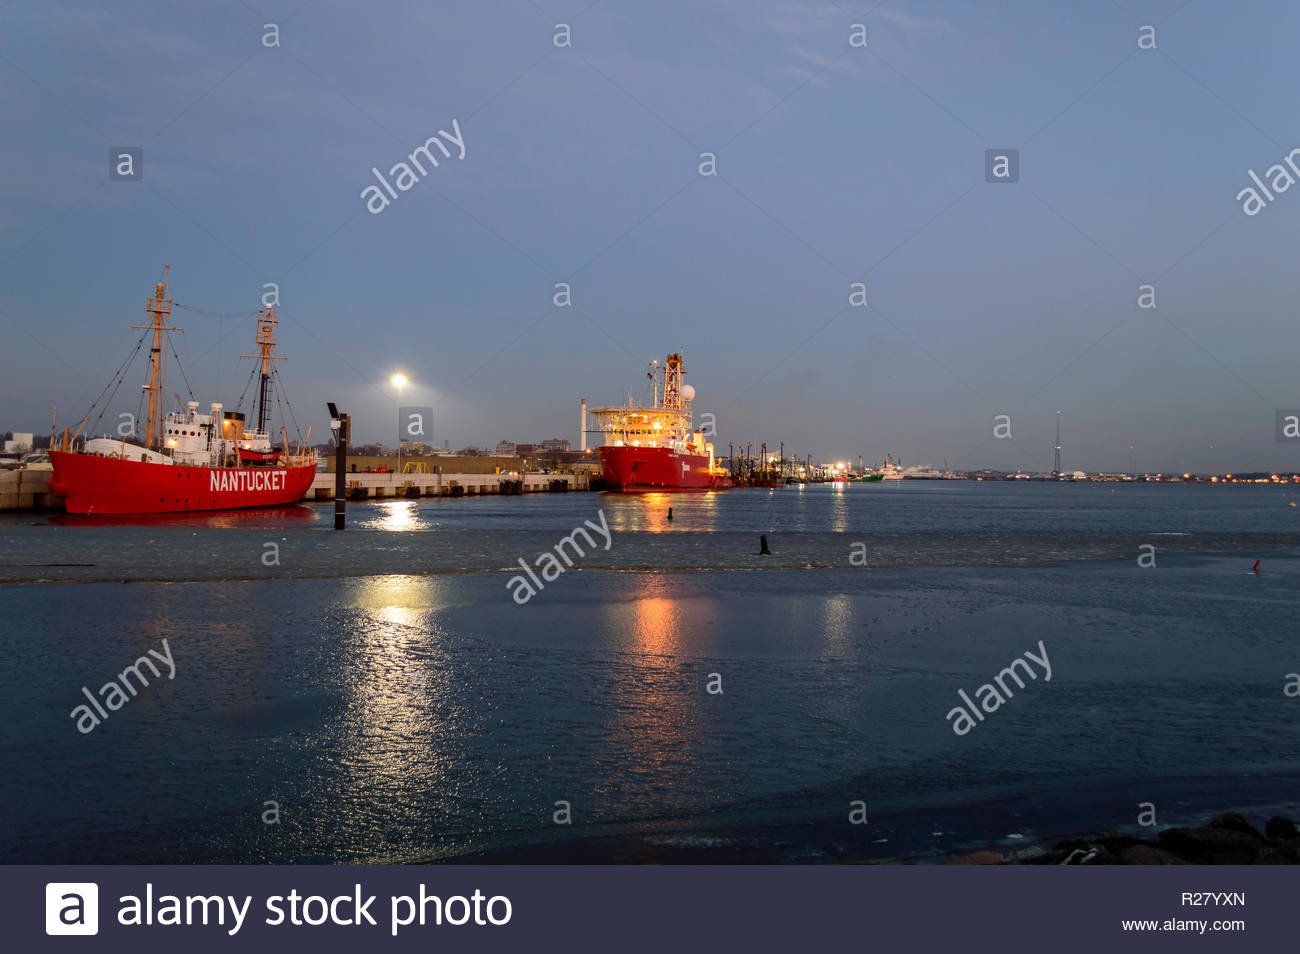 New Bedford, Massachusetts, USA - January 19, 2018: Nantucket Lightship and geotechnical drill ship Fugro Explorer at dawn in icy New Bedford harbor - Stock Image